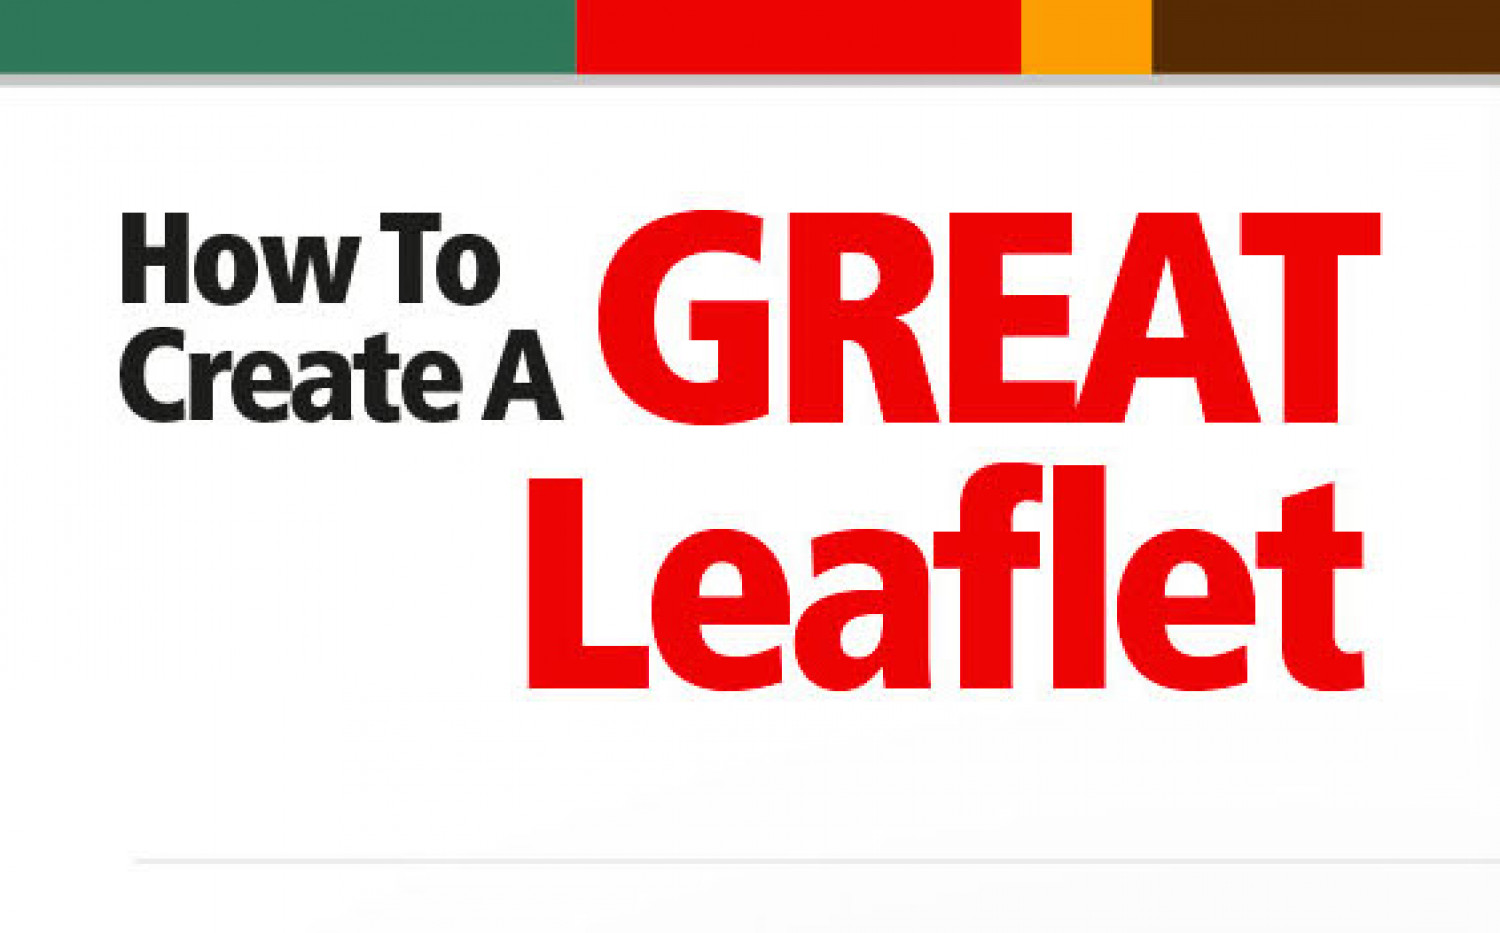 How To Create A Great Leaflet Infographic